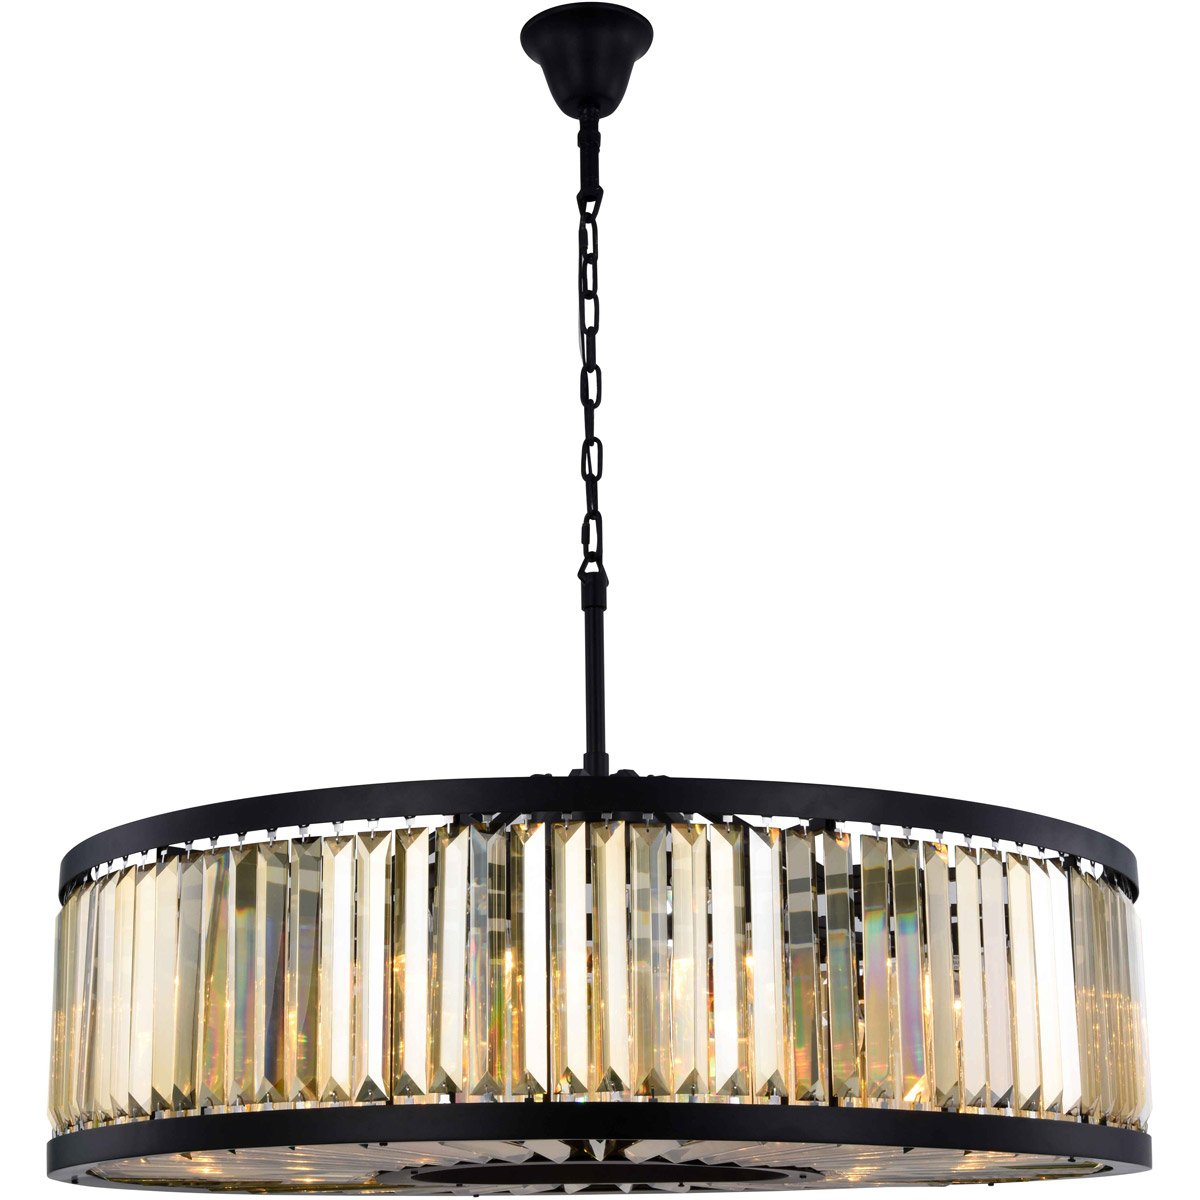 Chelsea 44 Crystal Pendant Chandelier With 10 Lights - Matte Black Finish And Smokey Crystal Chandelier